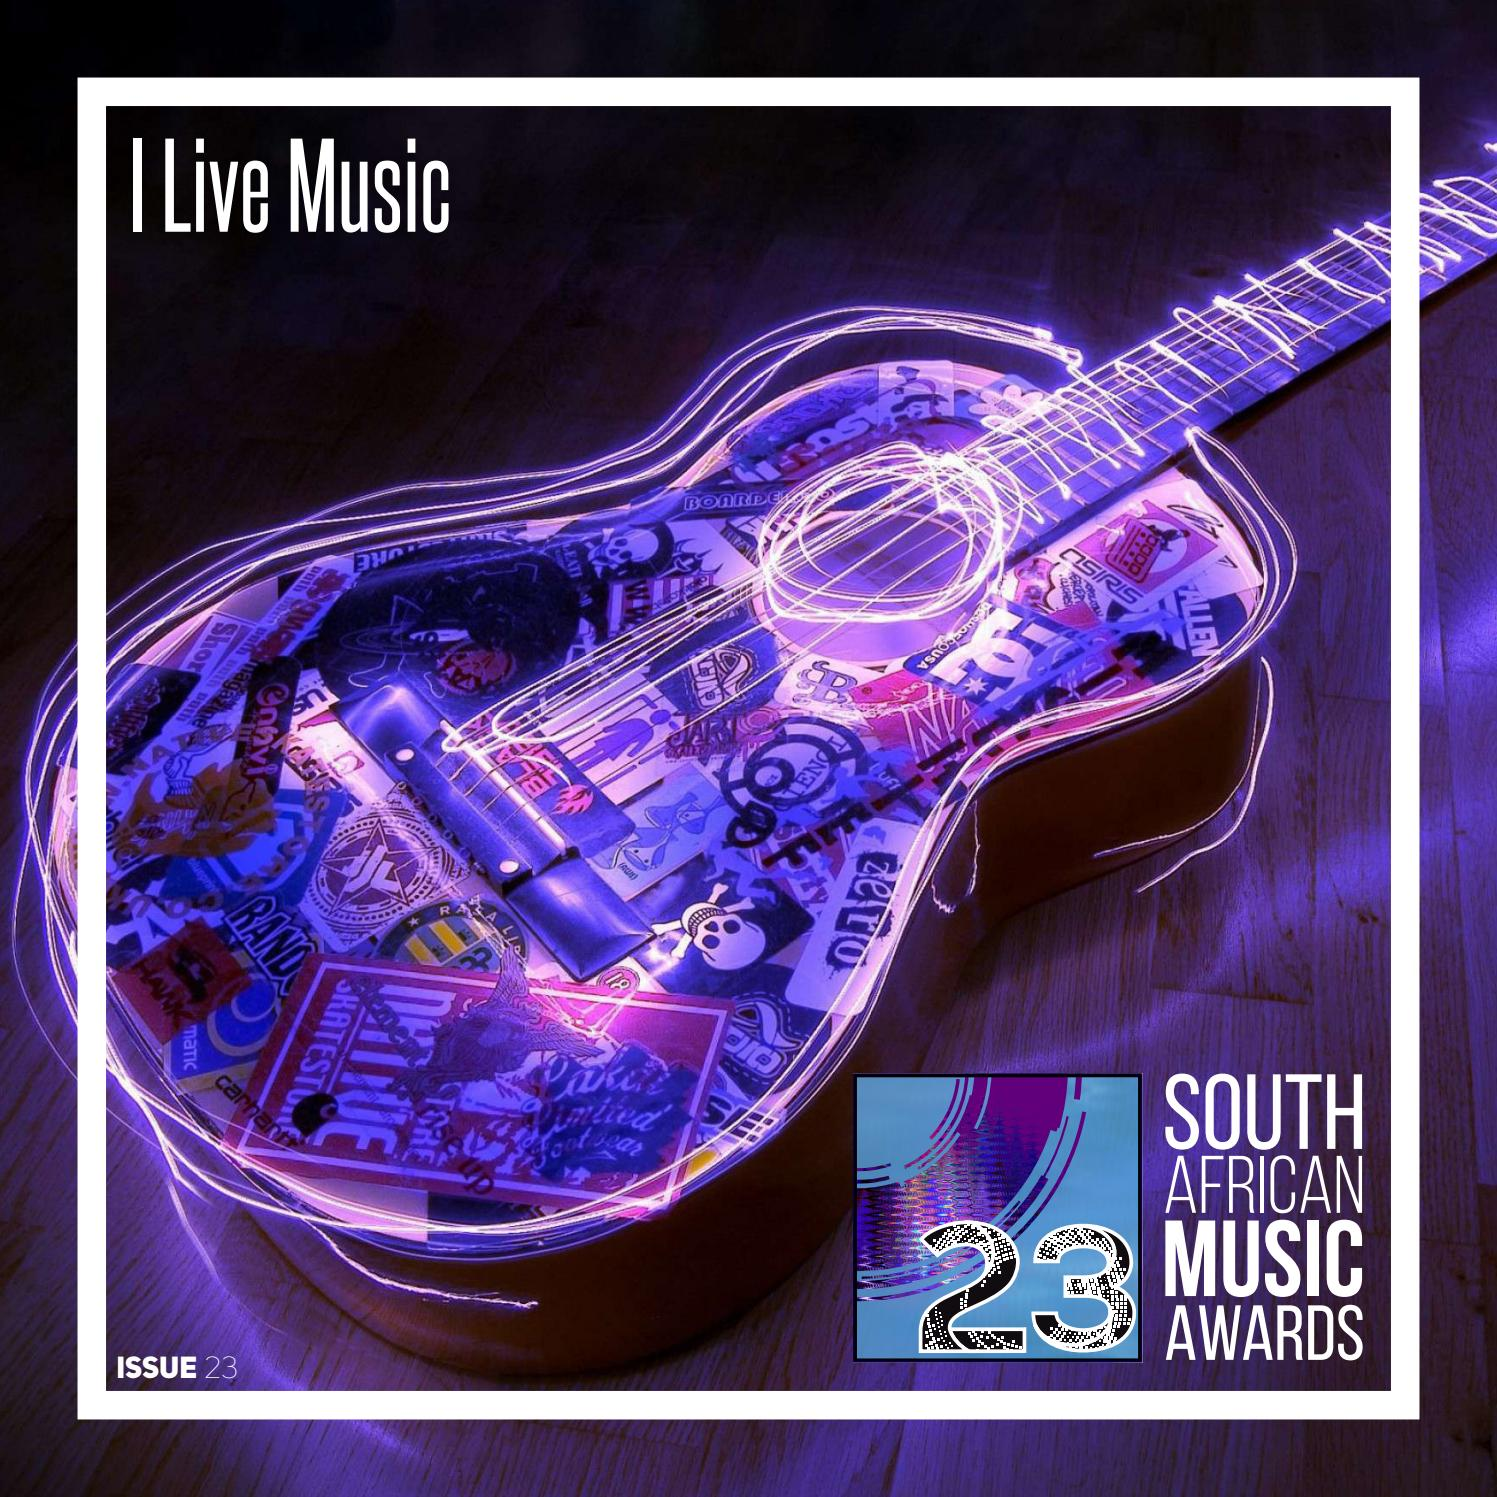 South African Music Awards 23 by 5th Republic Media Group